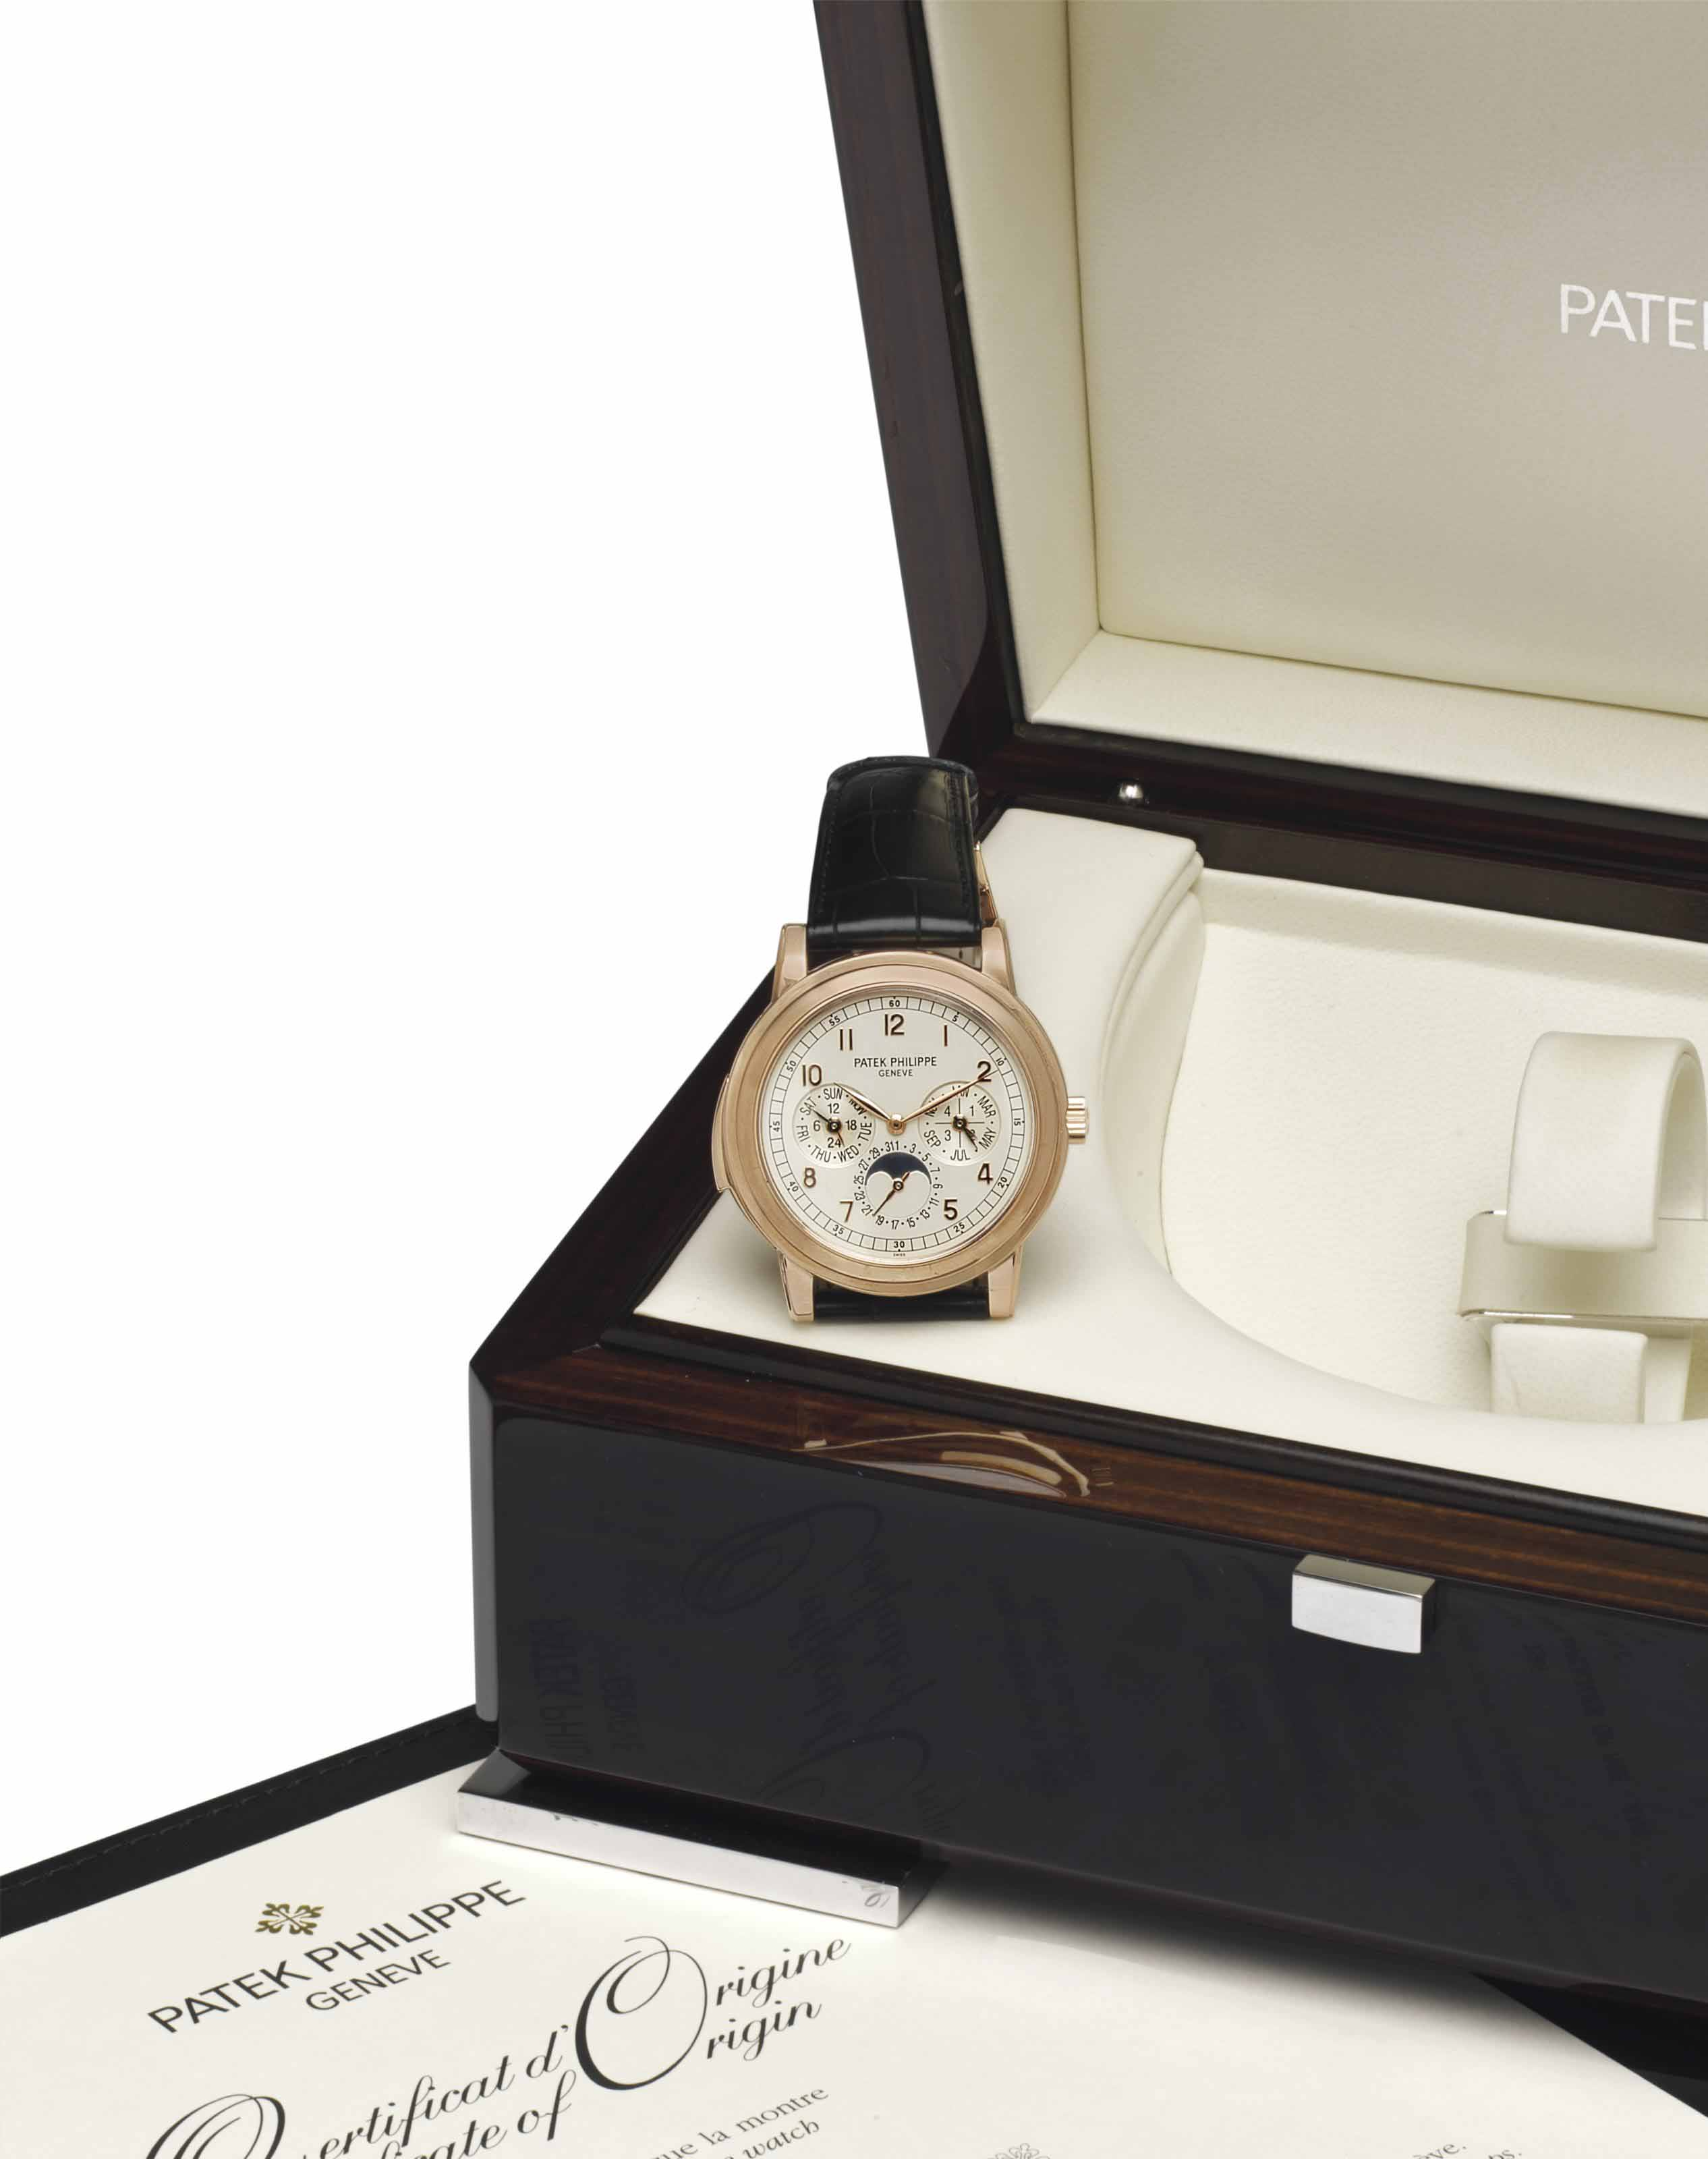 Patek Philippe. A Fine and Rare Oversized 18k Pink Gold Automatic Minute Repeating Perpetual Calendar Wristwatch with Moon Phases and Original Certificate